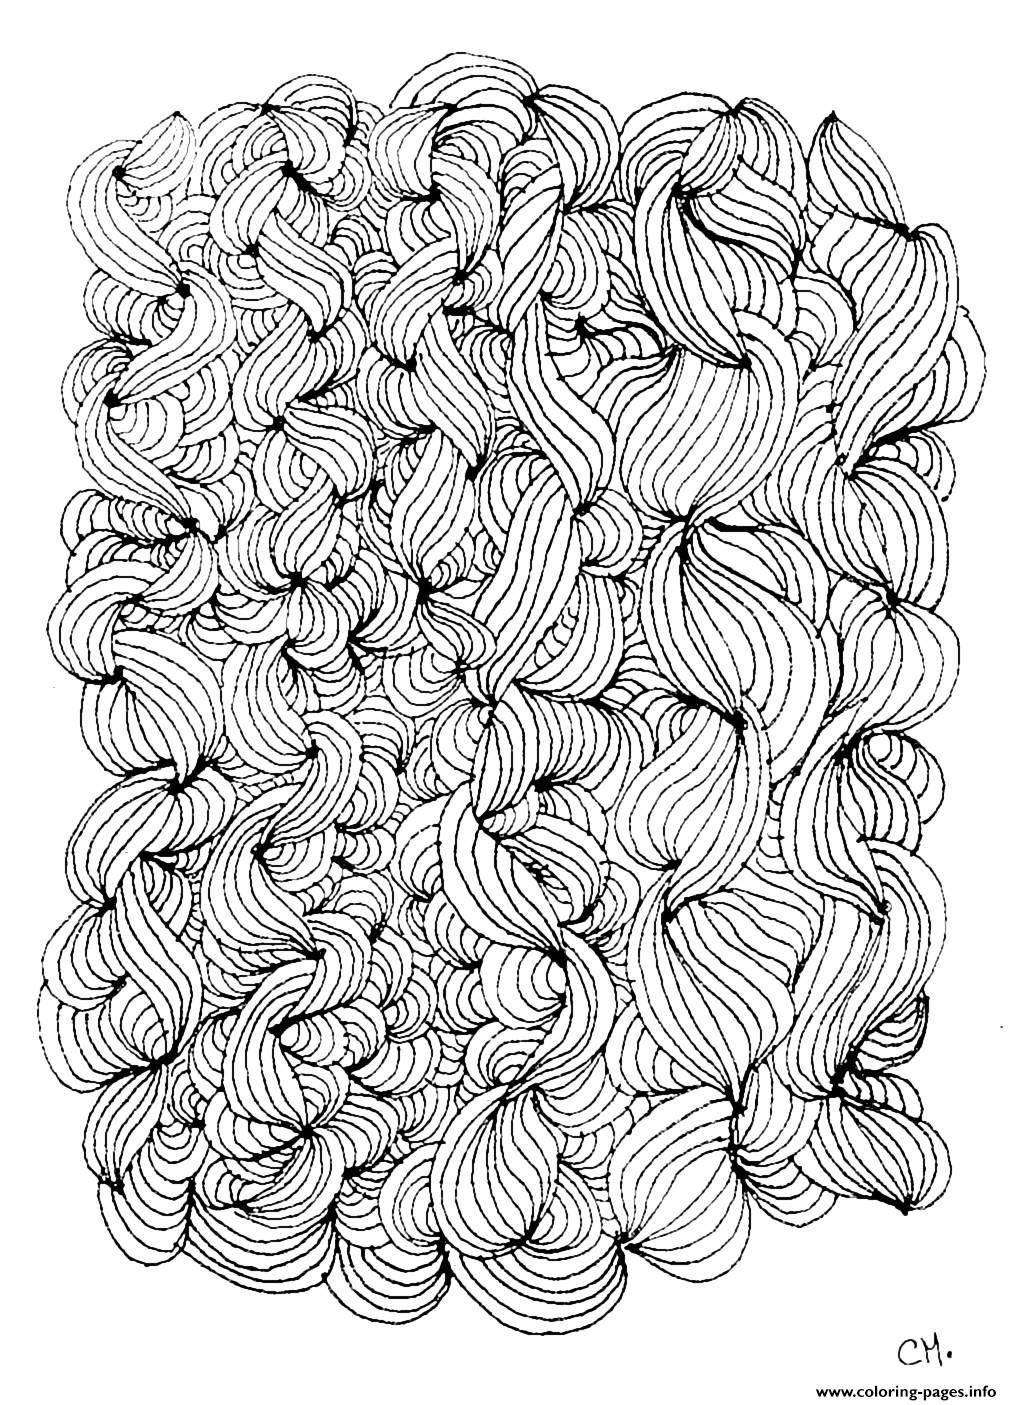 Adult Zentangle By Cathym 3 coloring pages